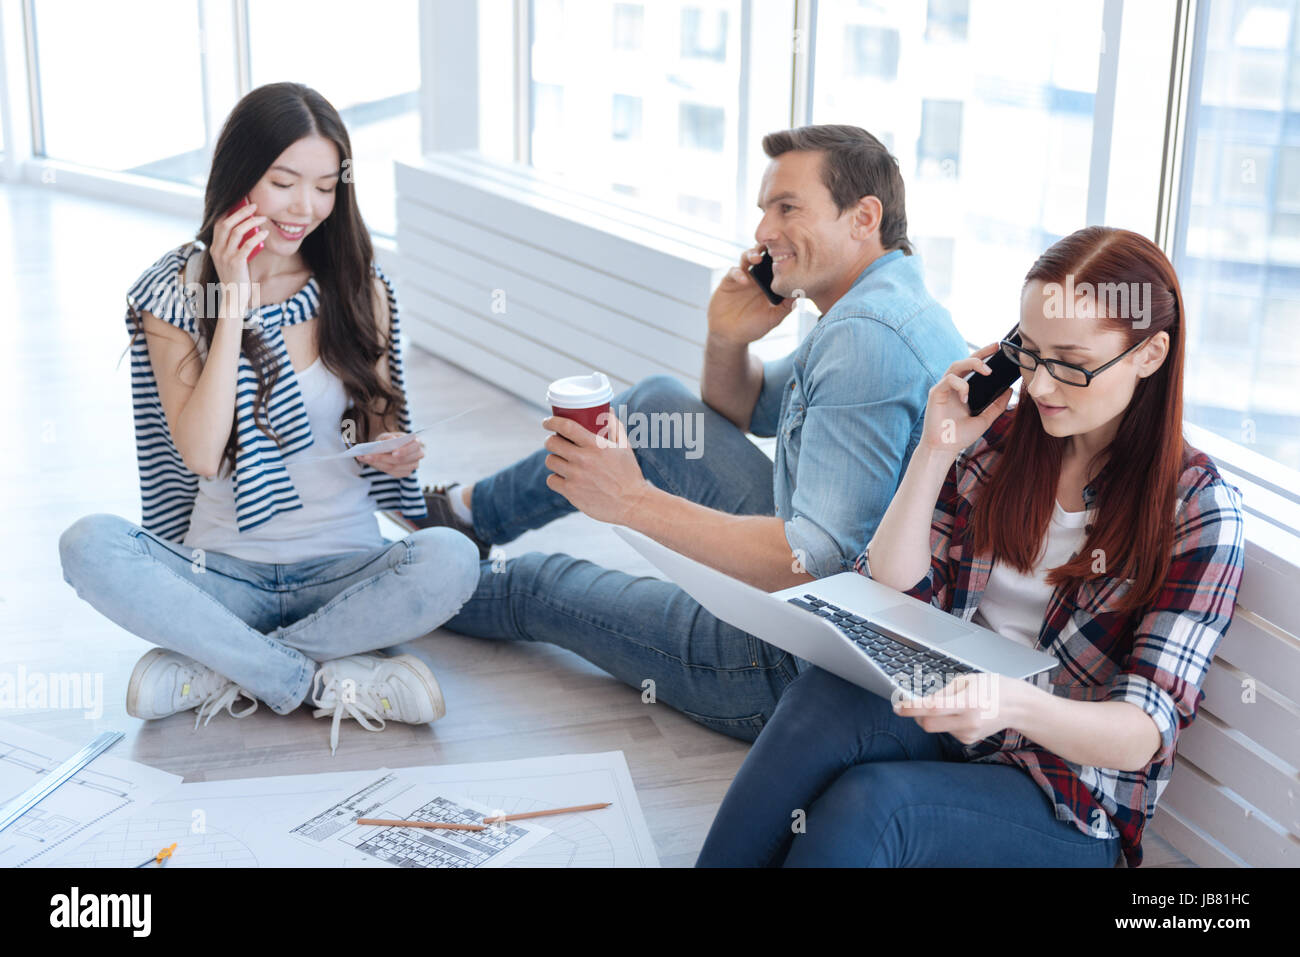 Nice young people speaking on the phone Stock Photo